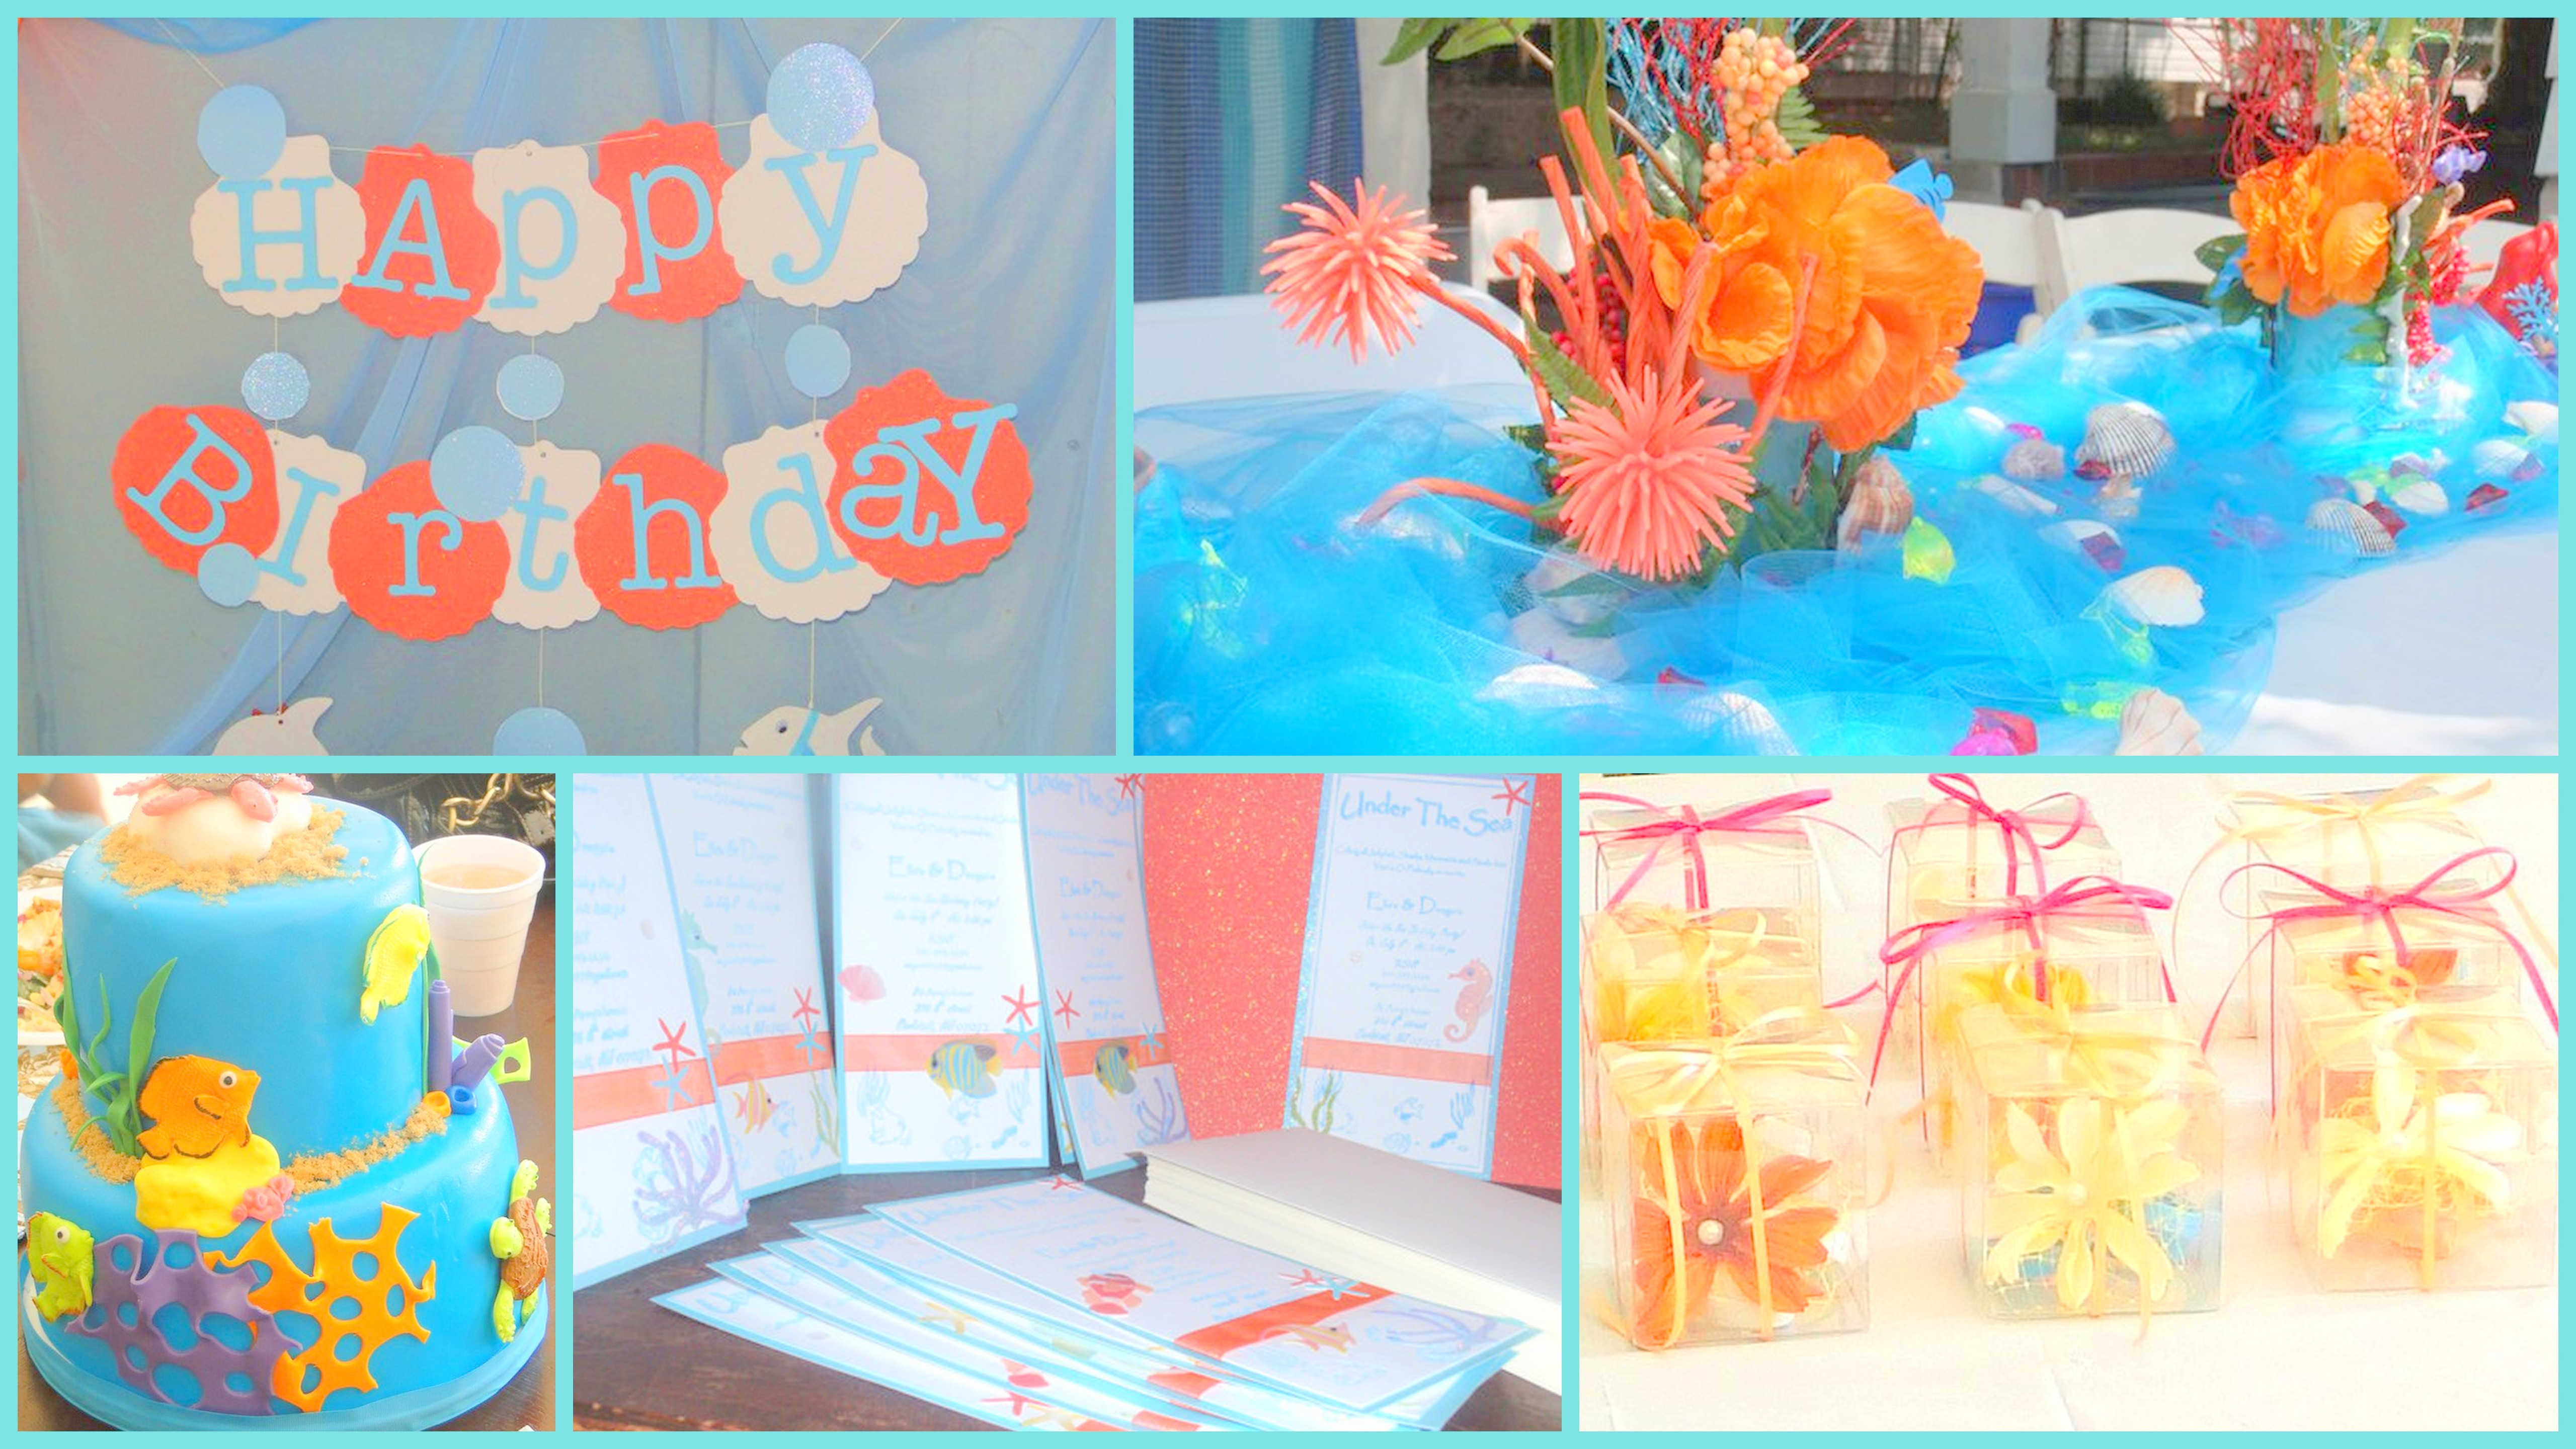 Best ideas about Under The Sea Birthday Party . Save or Pin Under The Sea Birthday Party Theme Now.